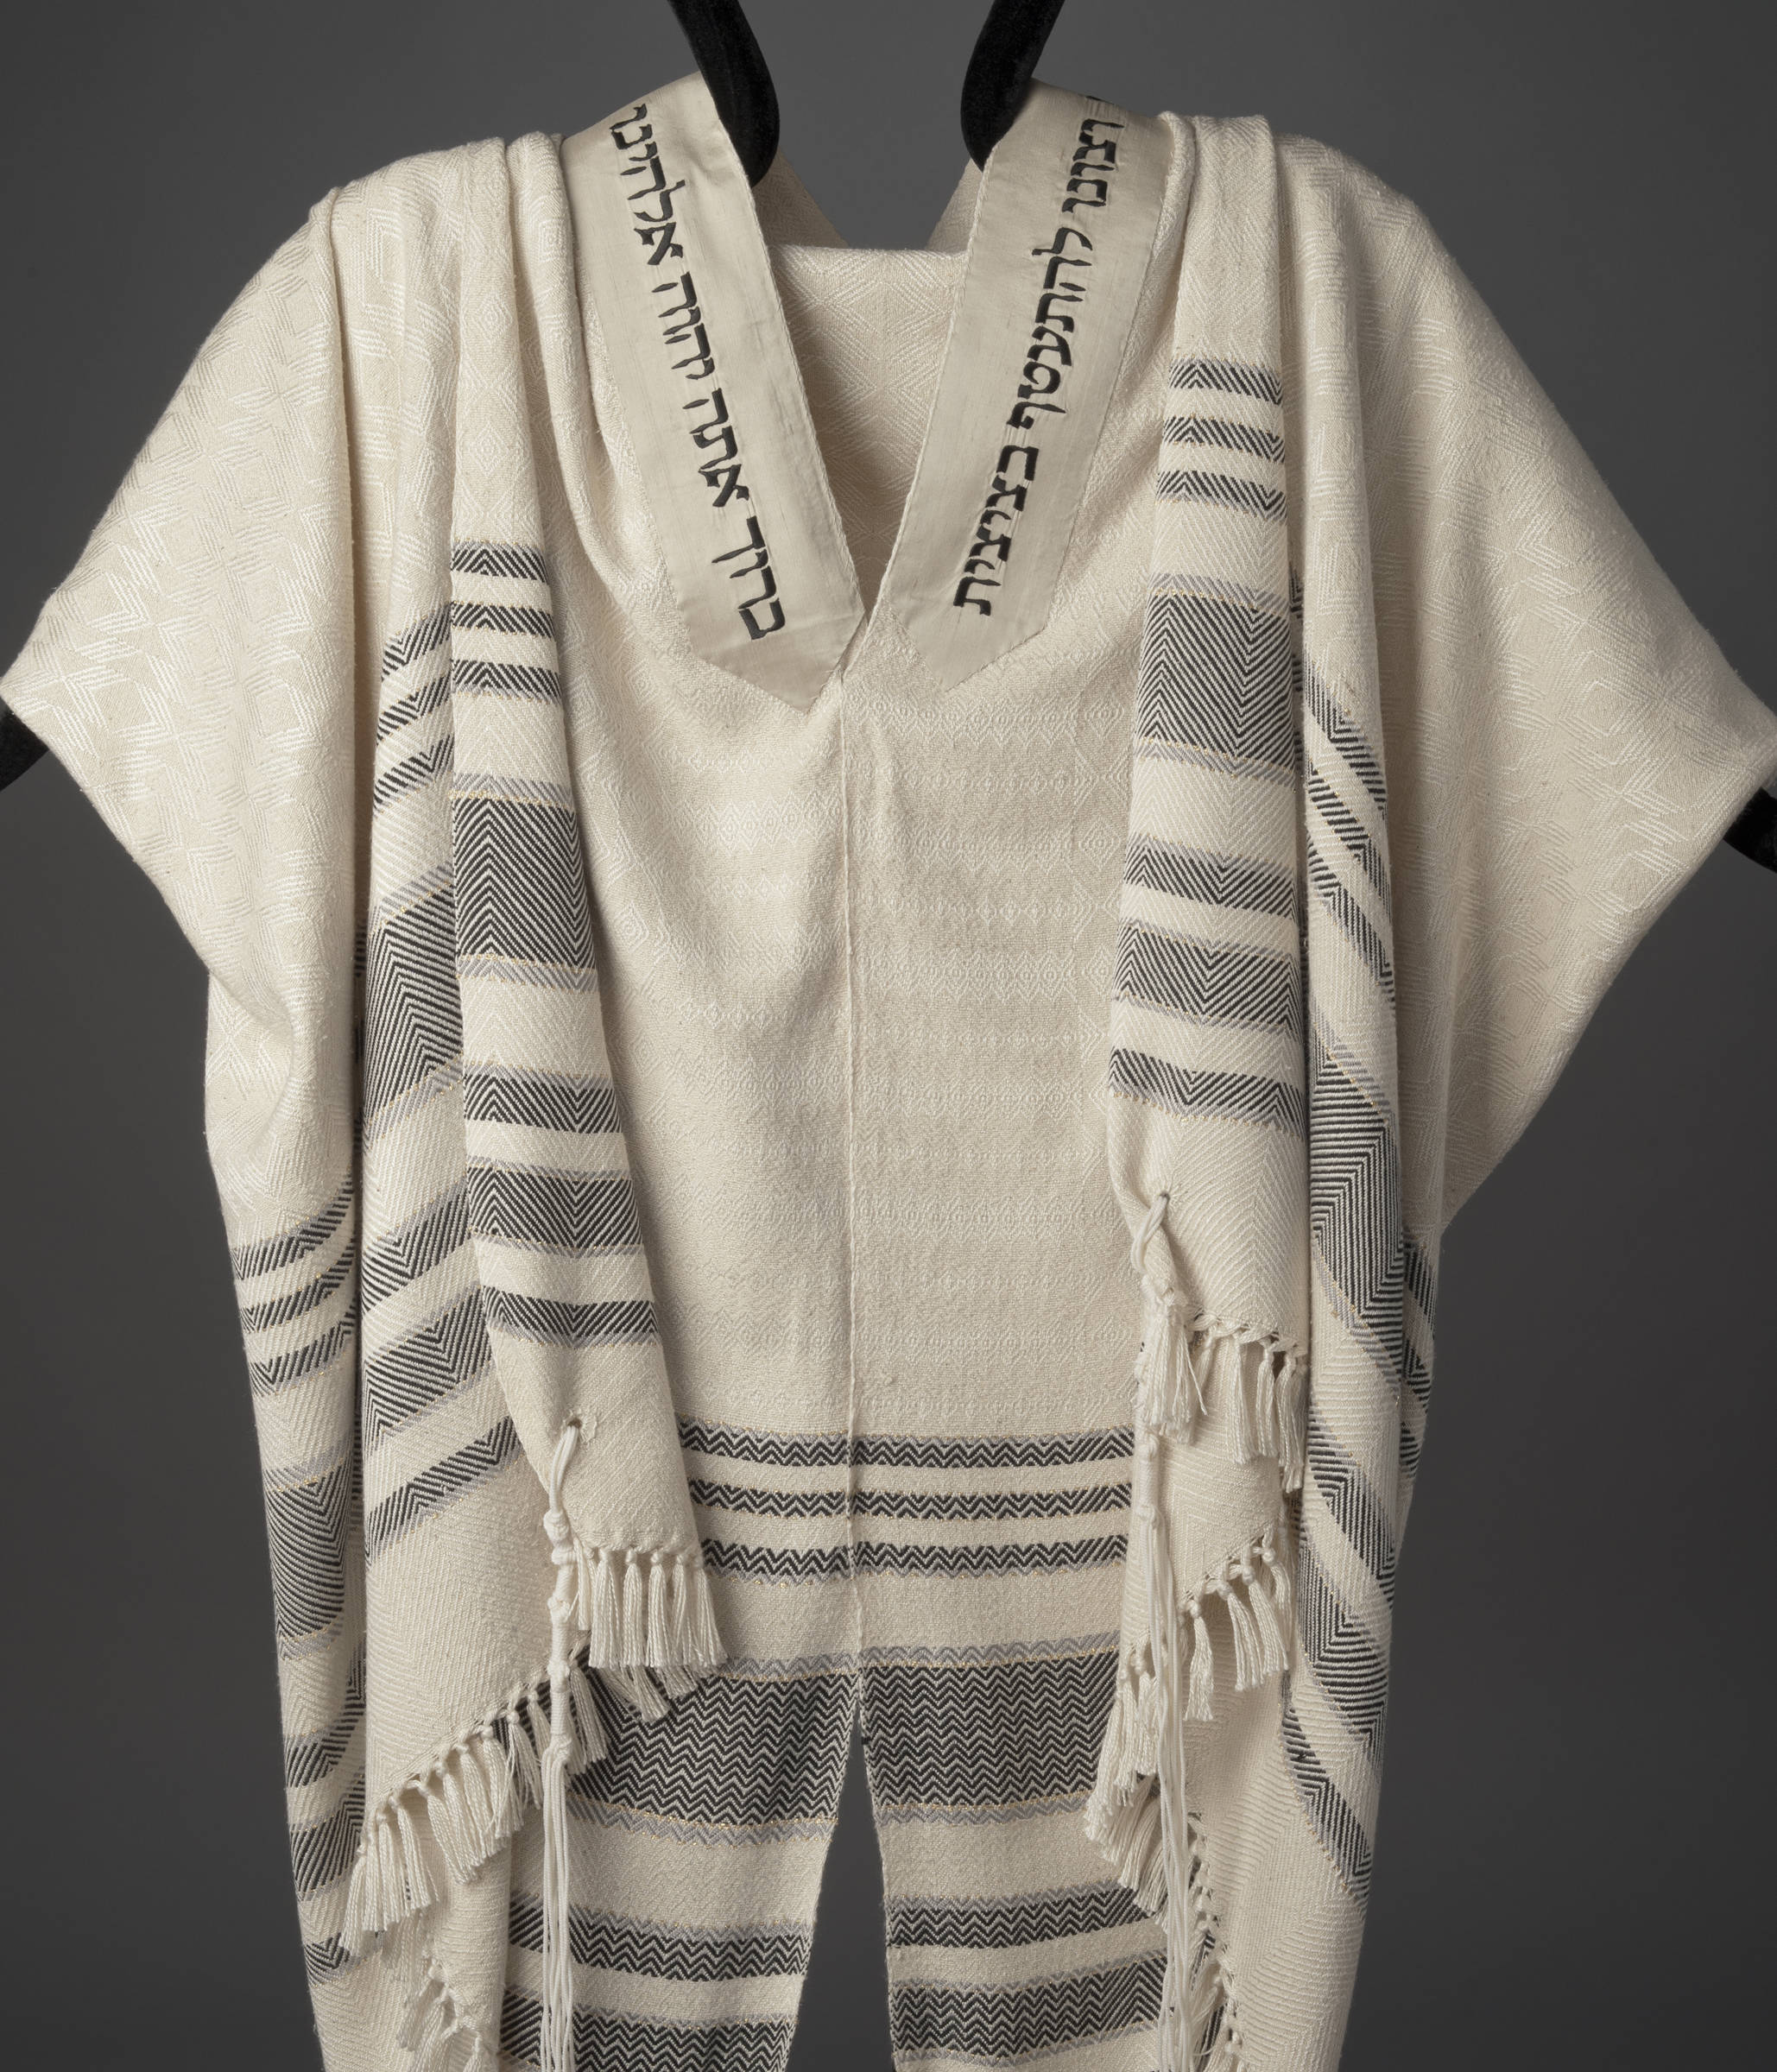 Prayer shawl for wedding